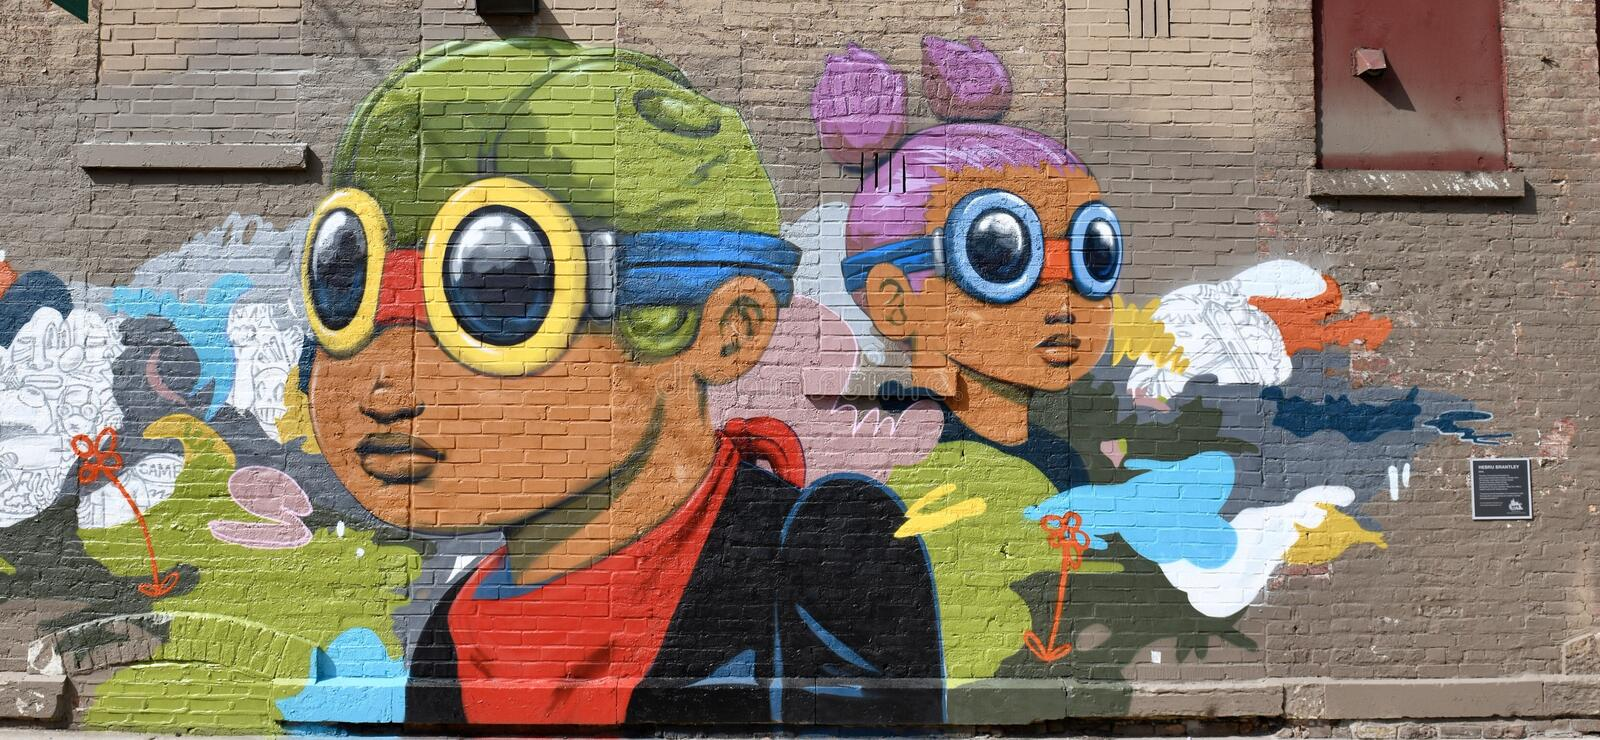 Wicker Park Brantley Mural. This is a Fal picture of a piece of public art titled: Wicker Park Mural, located in the Wicker Park neighborhood of Chicago royalty free stock photography